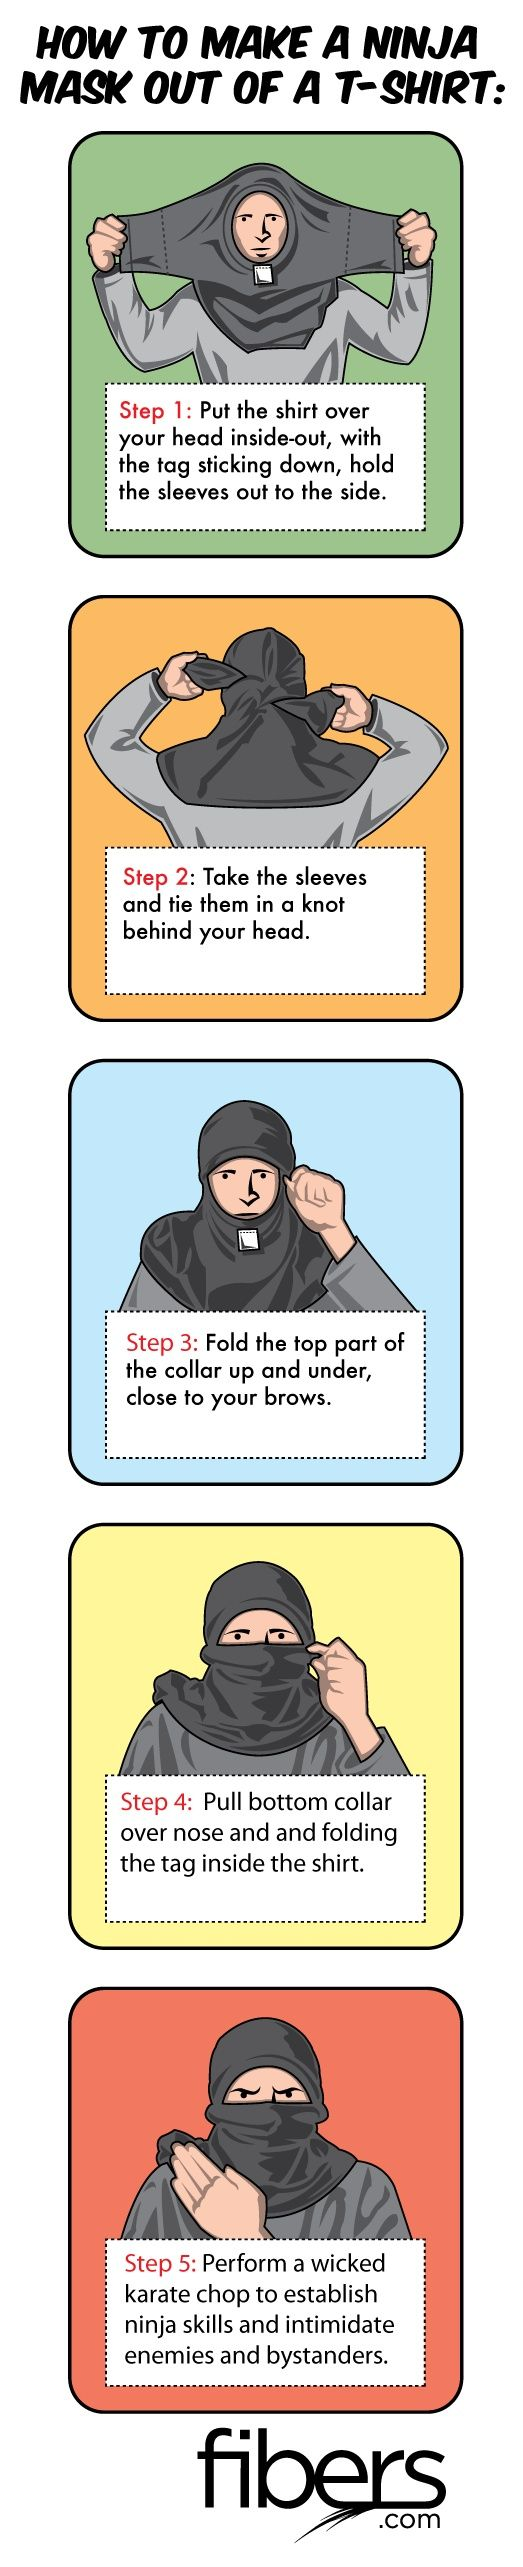 This tutorial is only for REAL ninjas, not the cartoon kind that kill only when they have to.